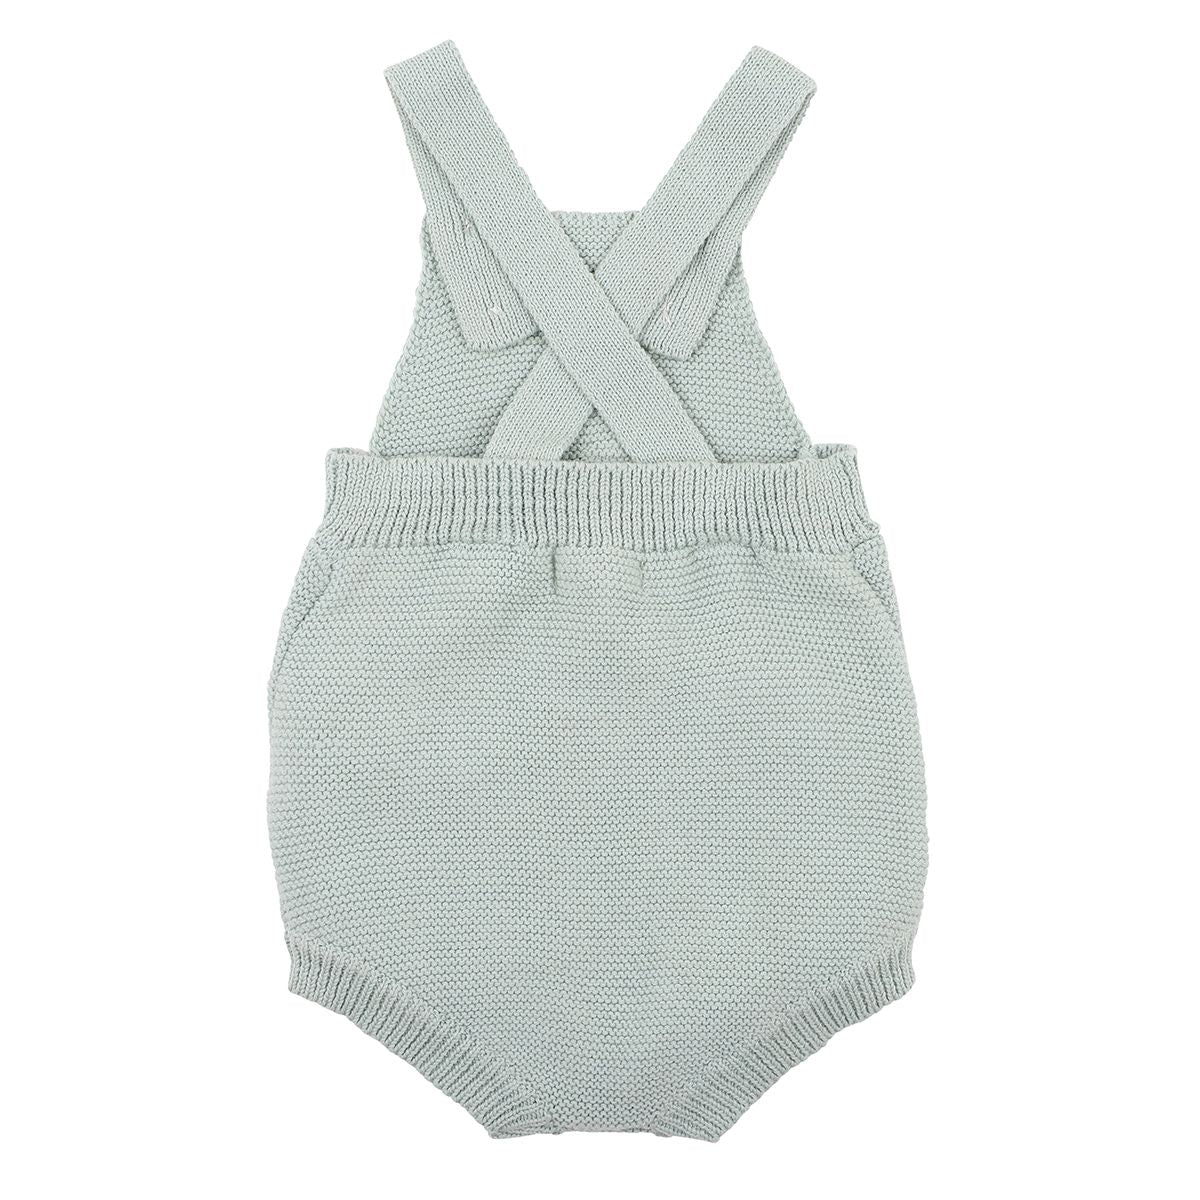 Tia Sage Knitted Bodysuit